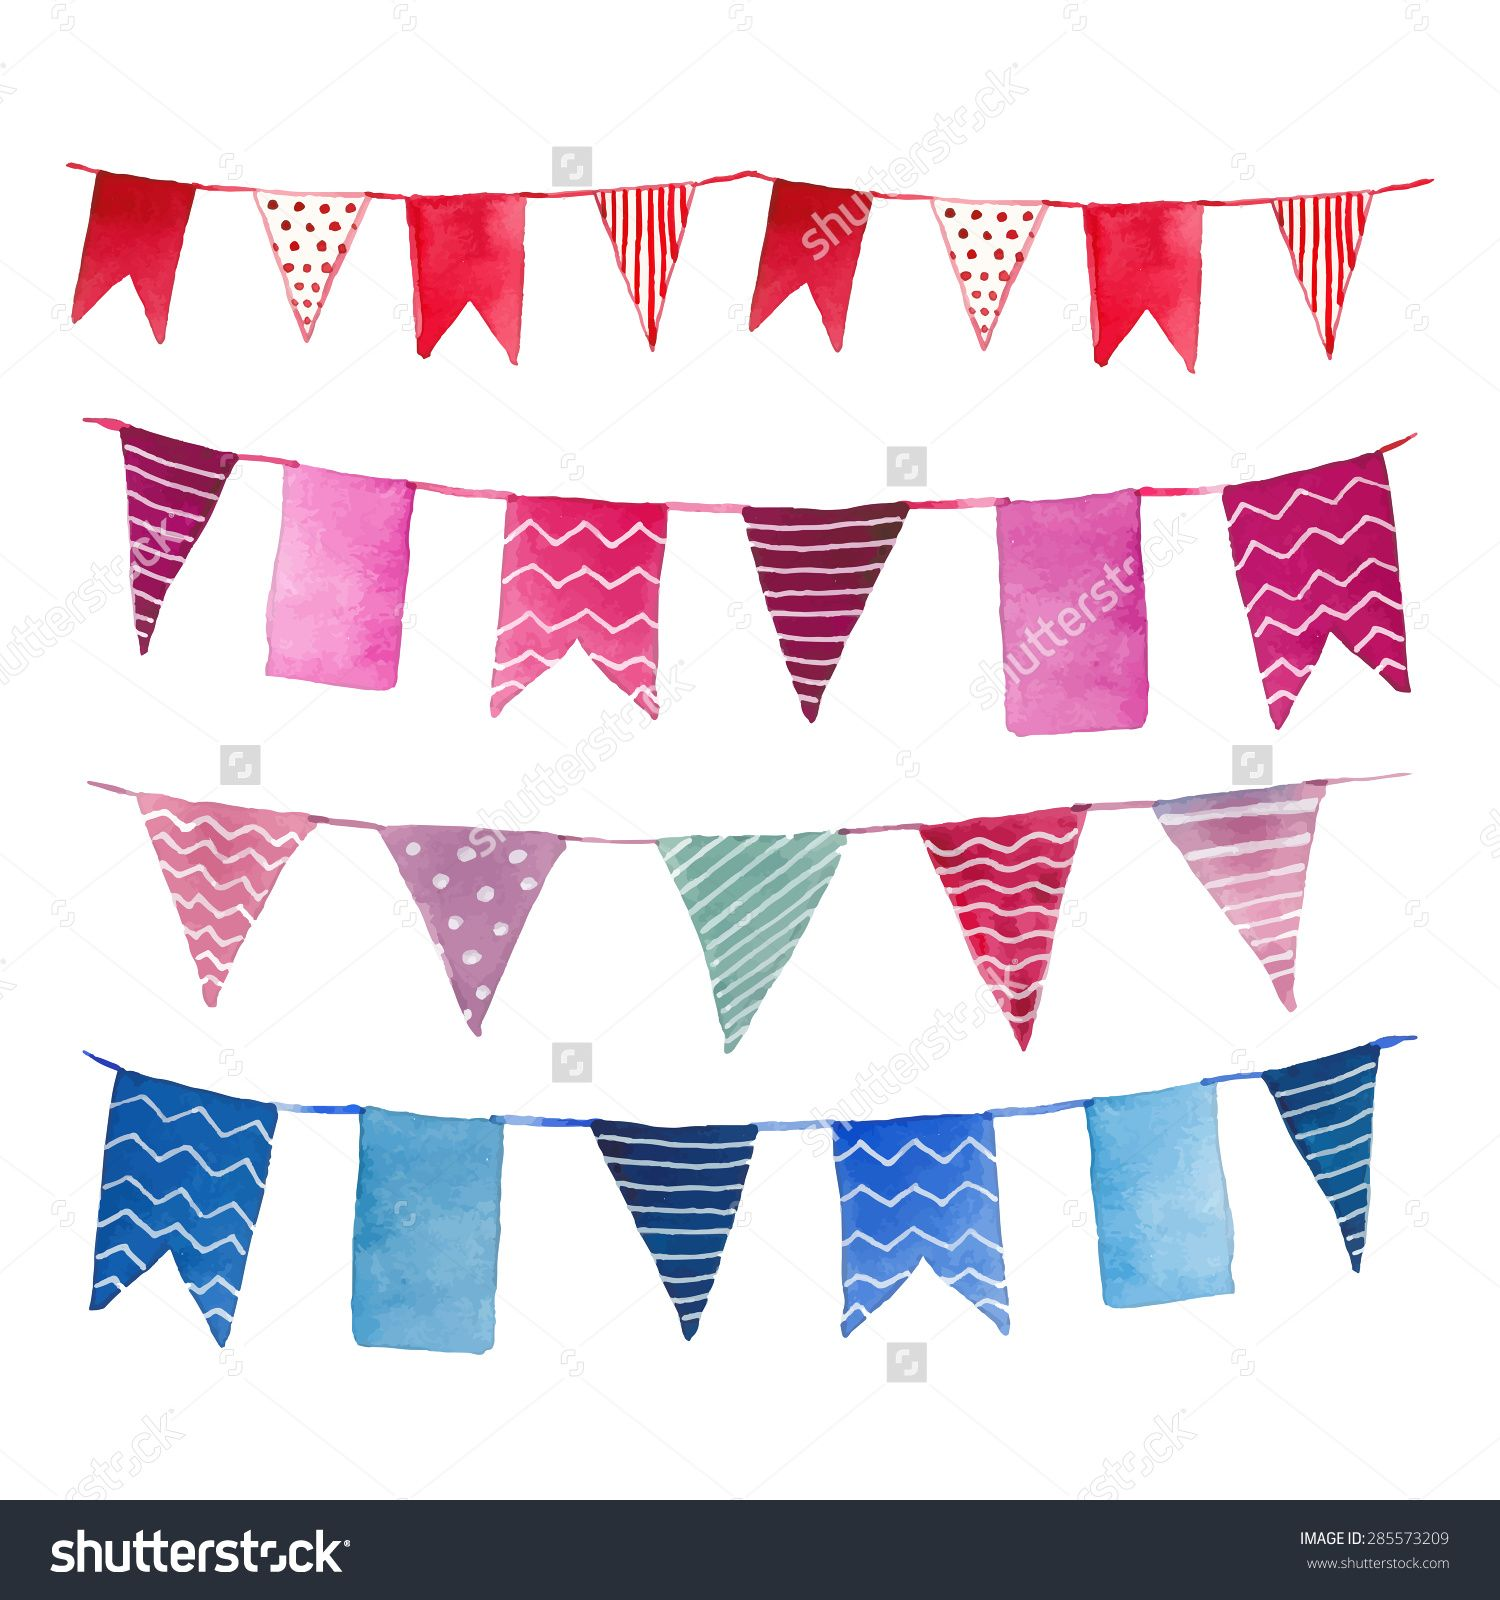 Stock vector watercolor vintage flags garlands set in vector party watercolor vintage flags garlands set in vector party baby room and wedding decor elements with various modern patterns polka dots stripes zigzag junglespirit Choice Image